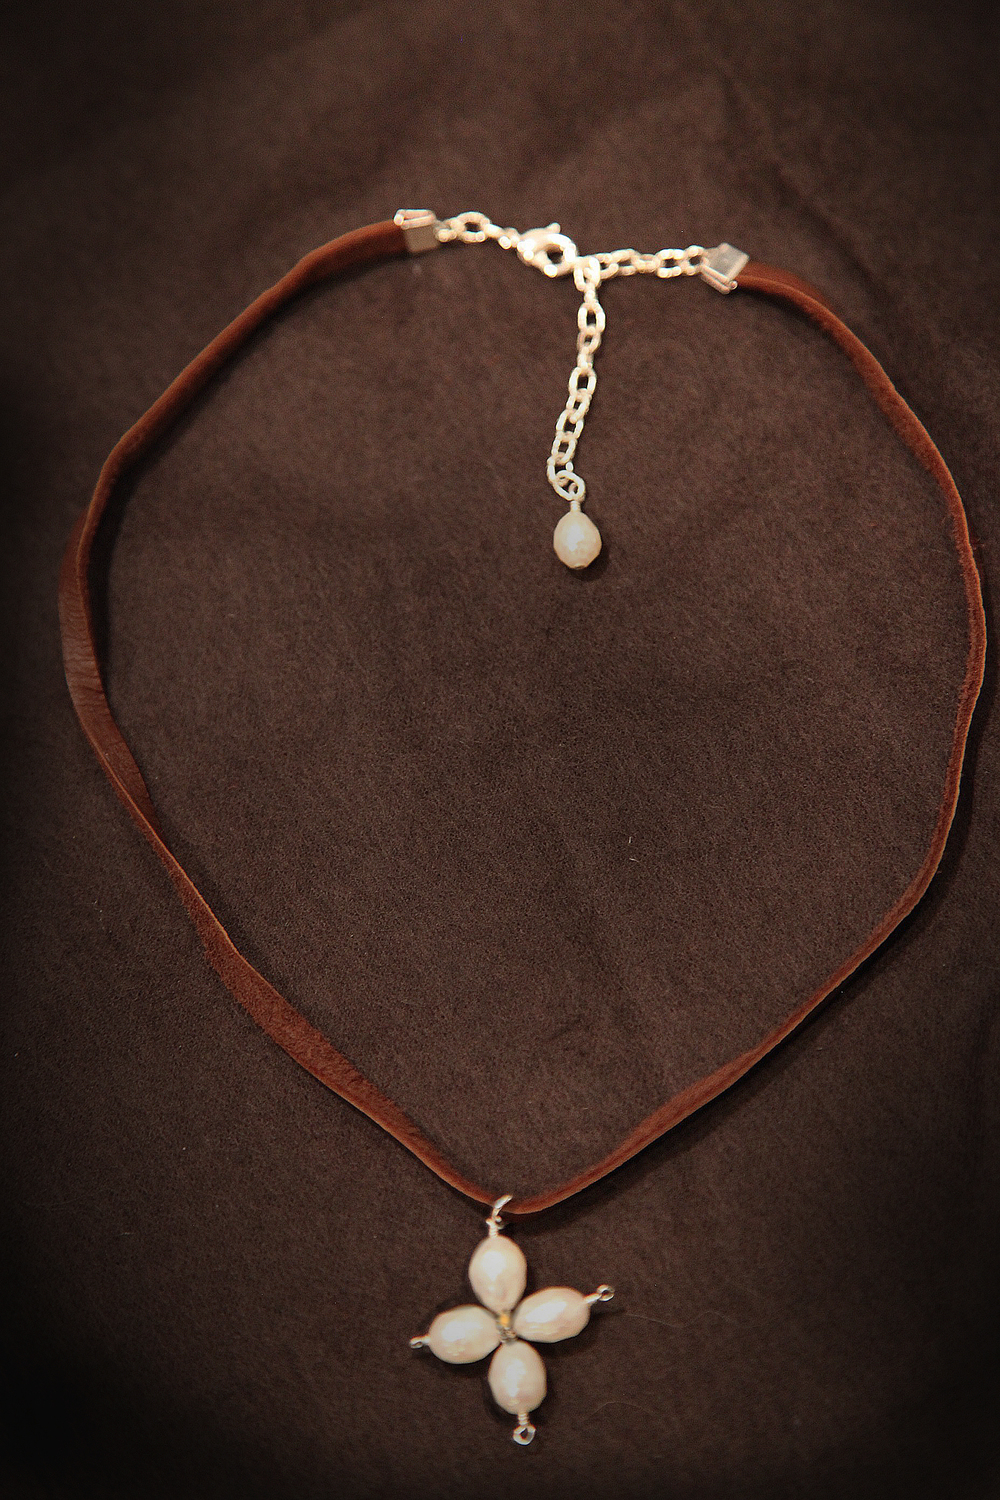 necklace9.jpg